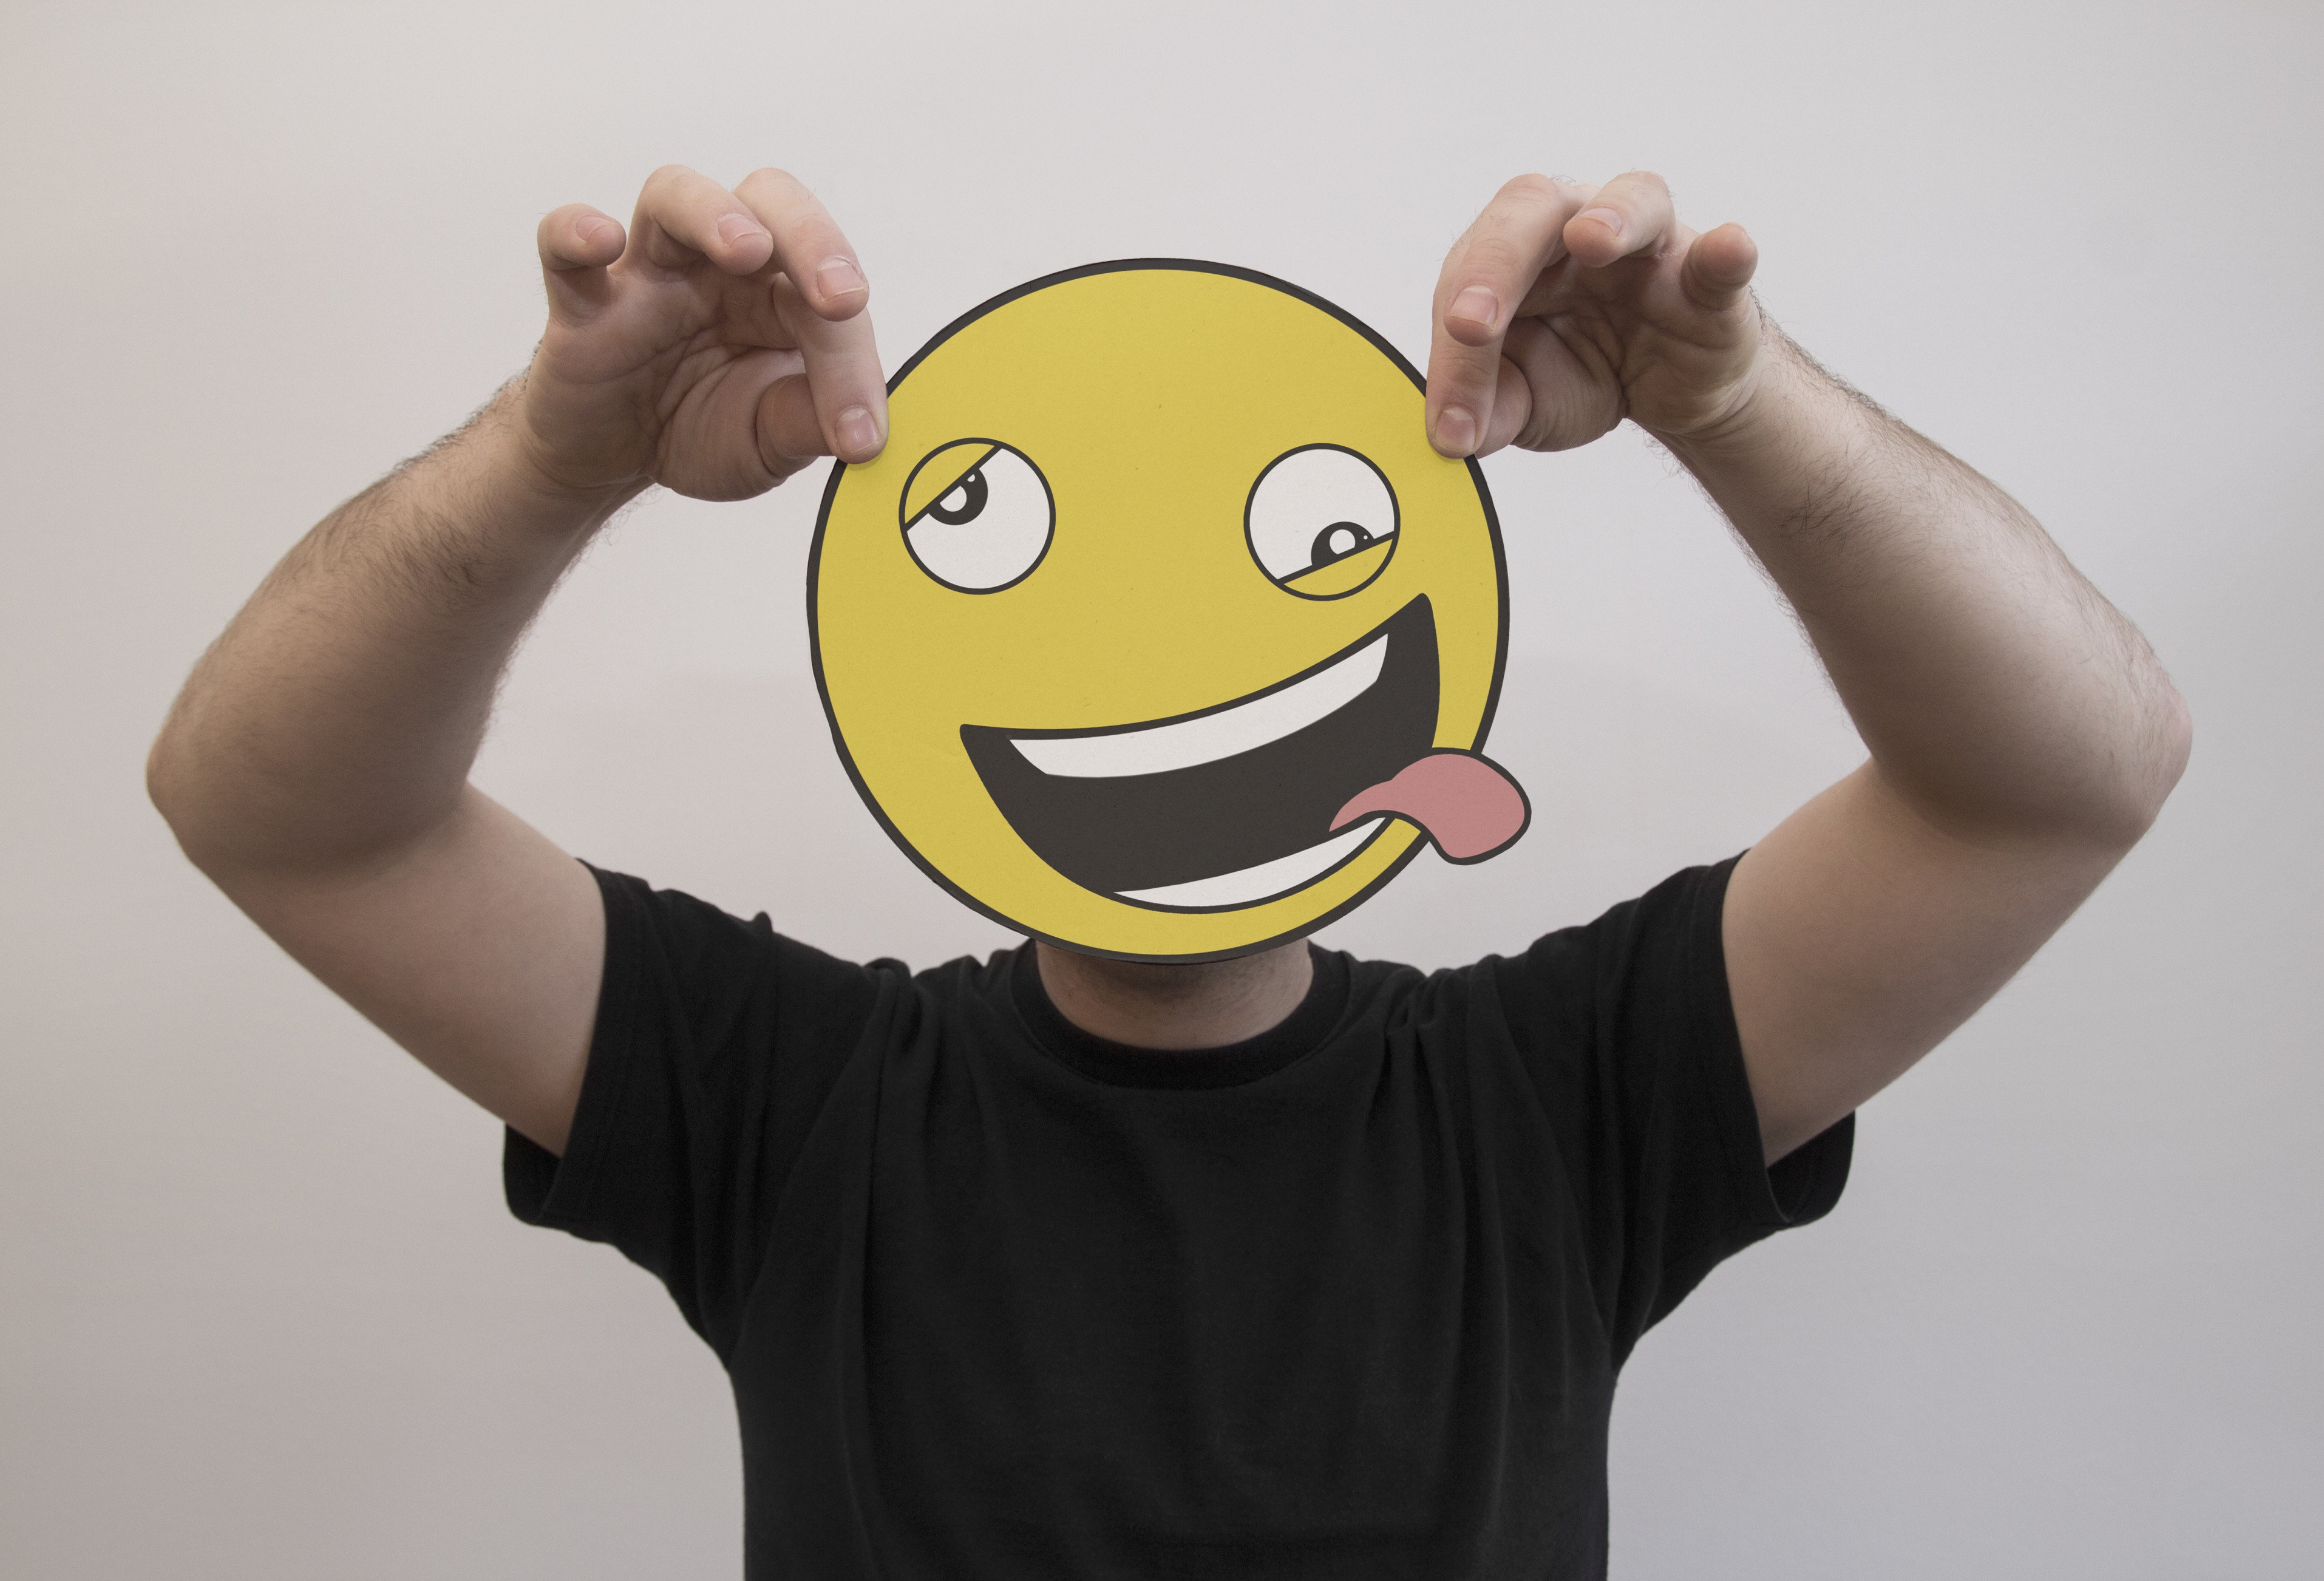 man holding smiley emoji